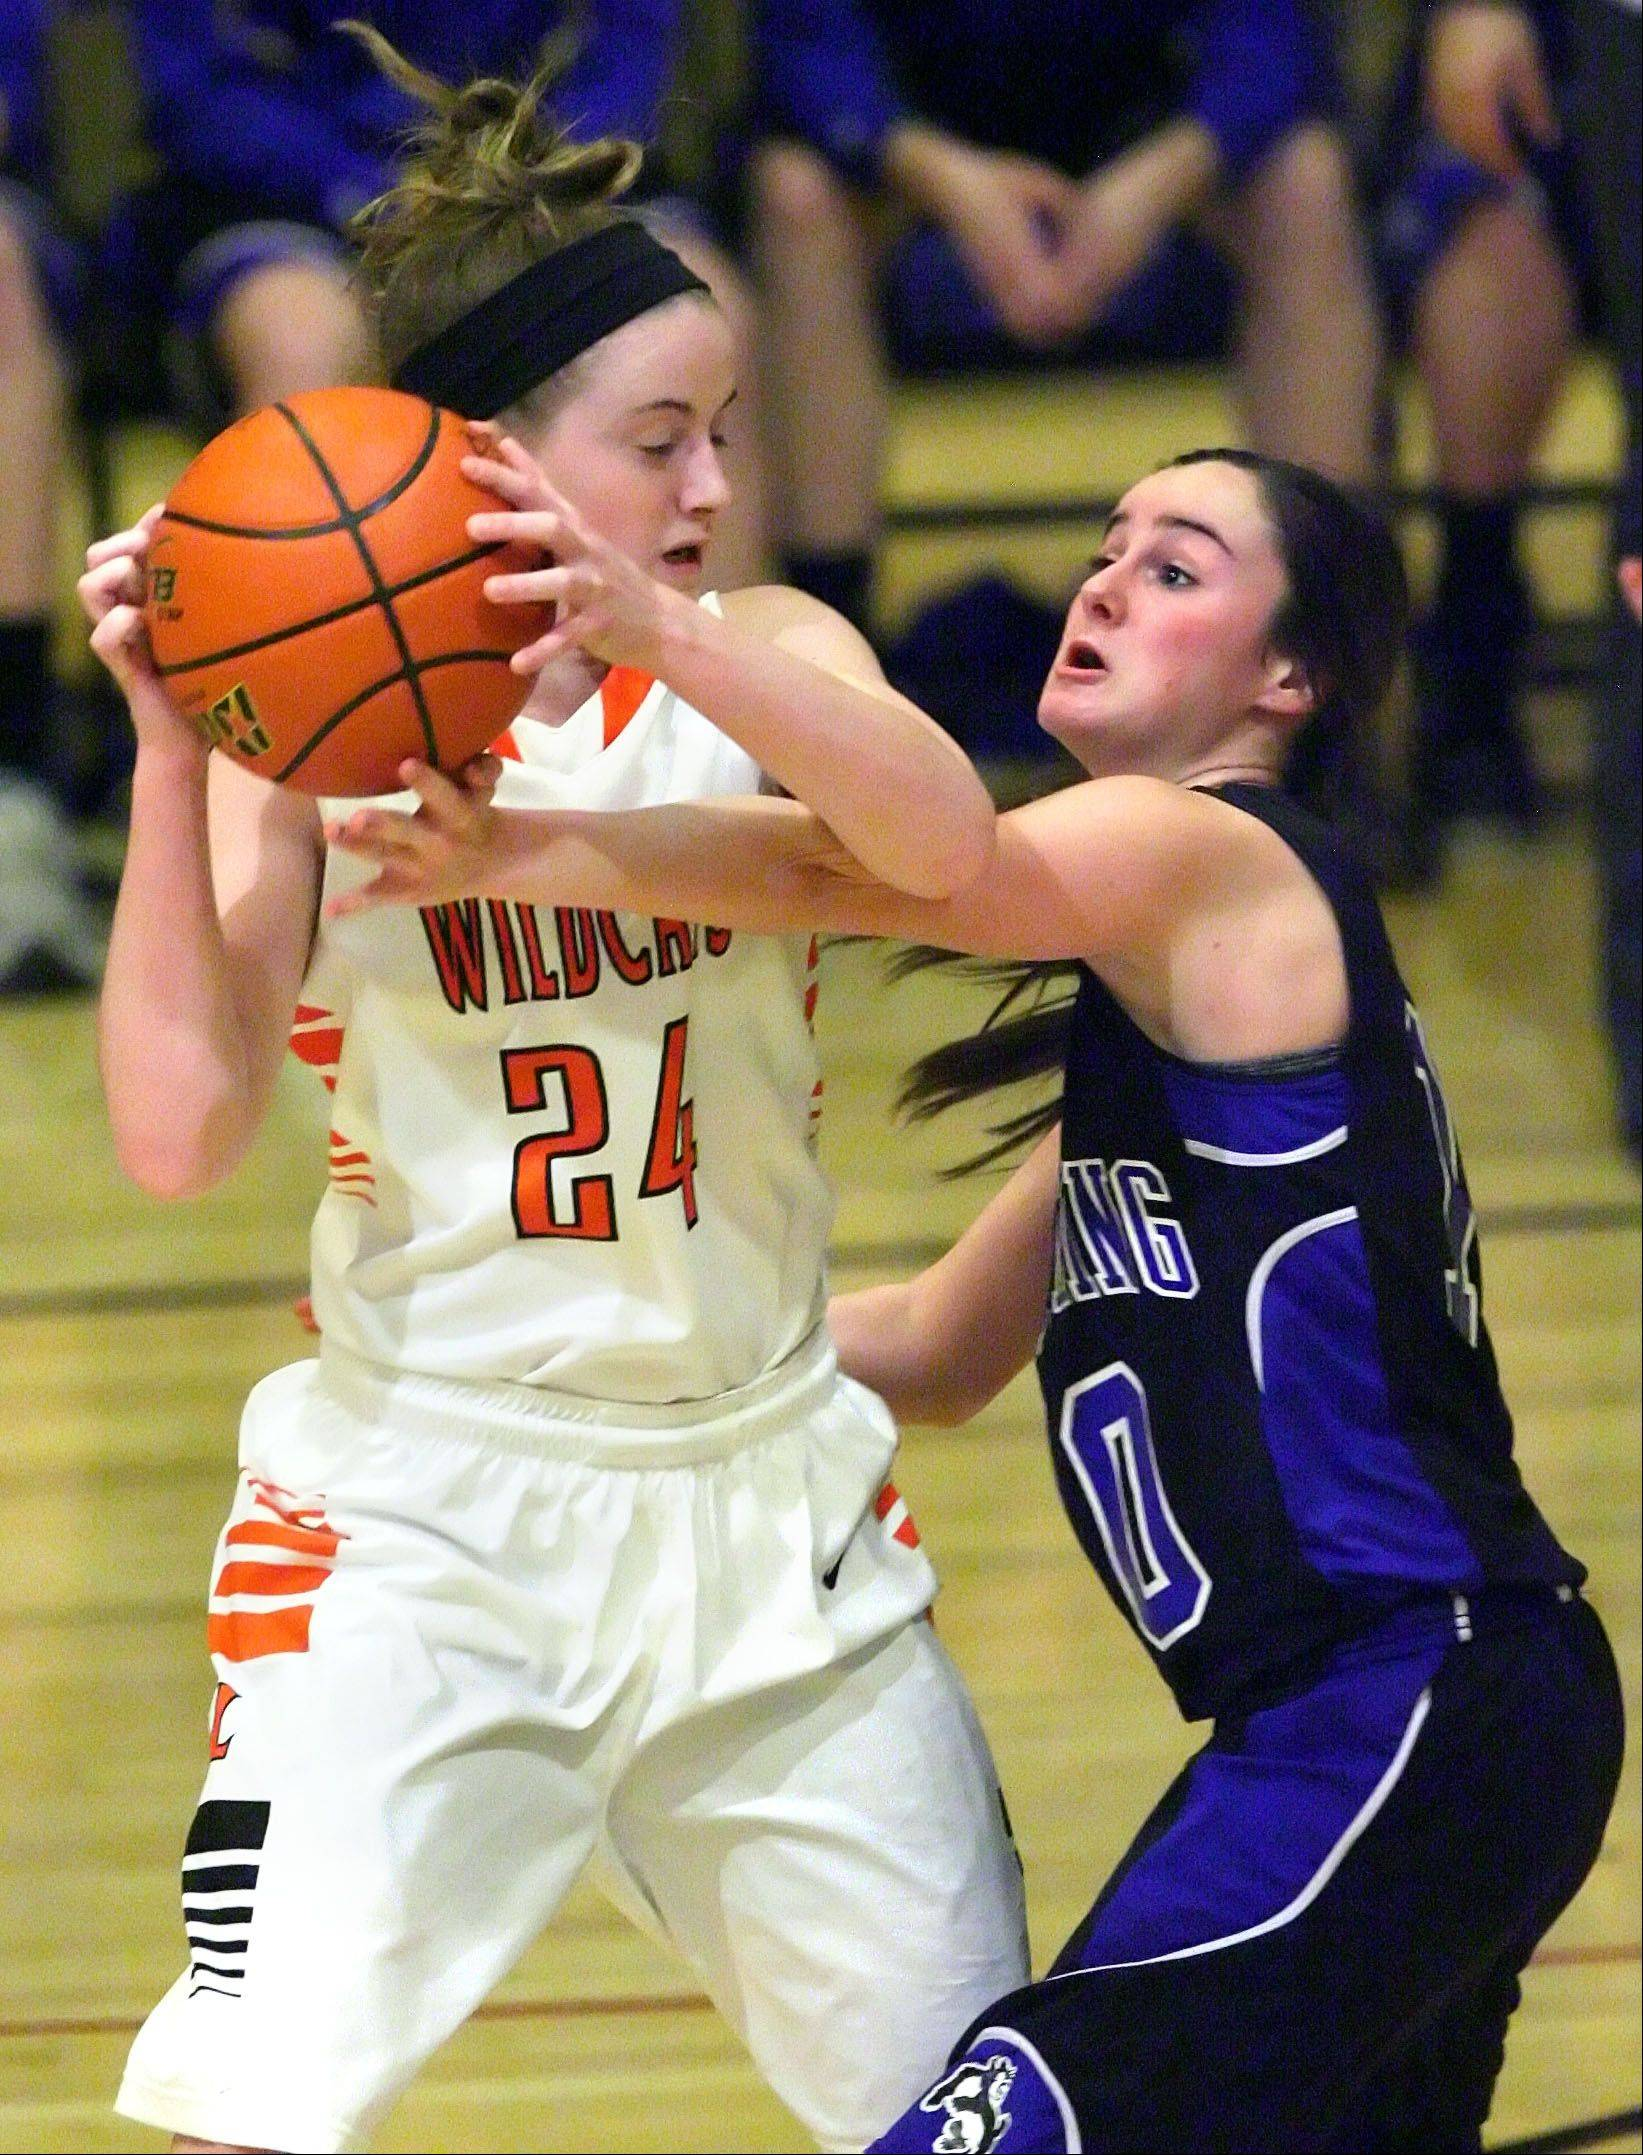 Libertyville's Rosie Lynch and Wheeling's Gianna Calistro battle for the ball during the Class 4A girls basketball regional play-in game Monday night at Wheeling.